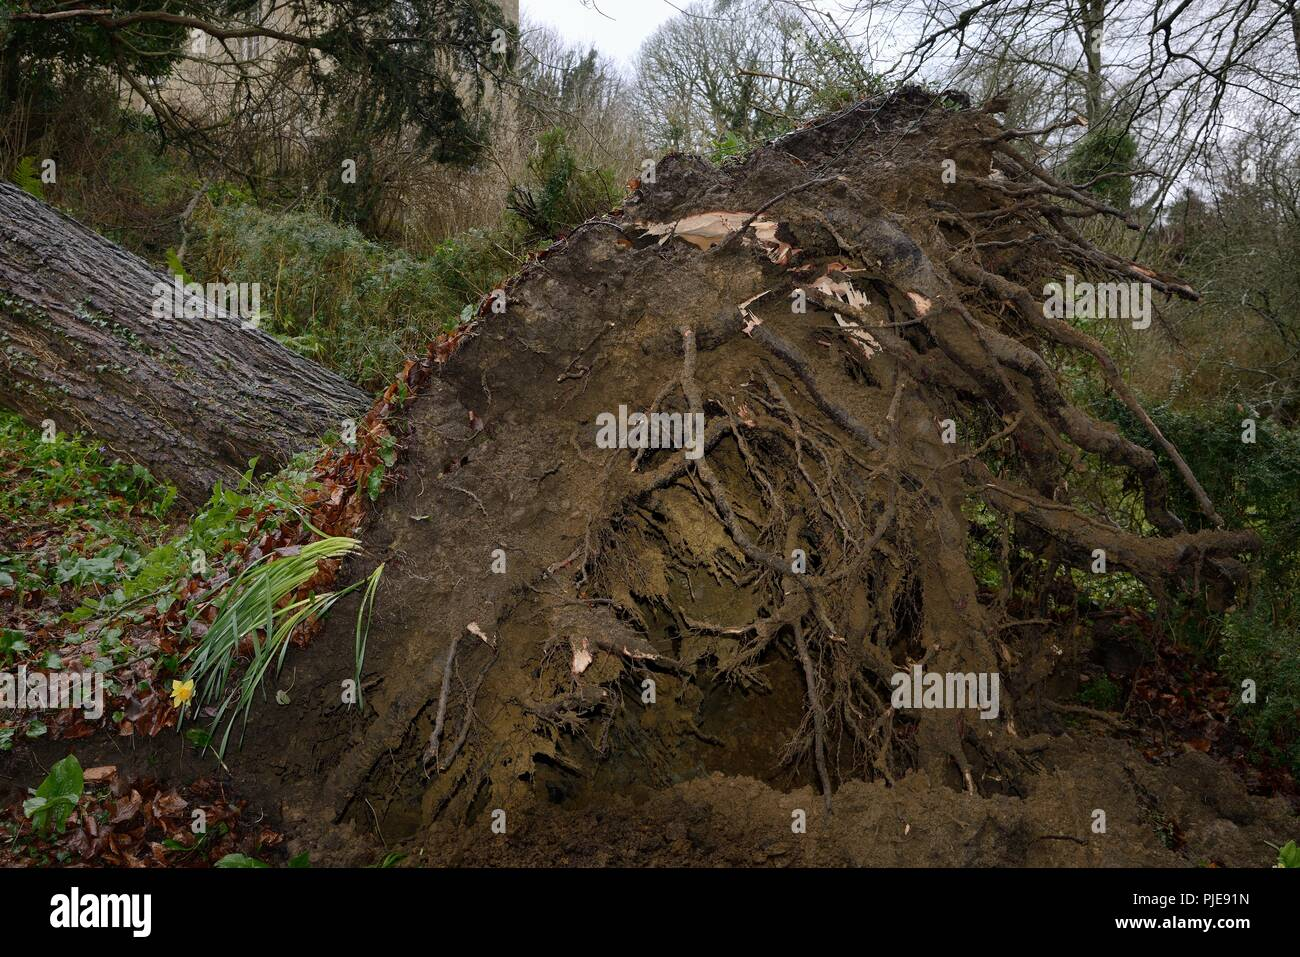 Deodar cedar tree  blown down and uprooted in a storm, Wiltshire, UK, March. - Stock Image